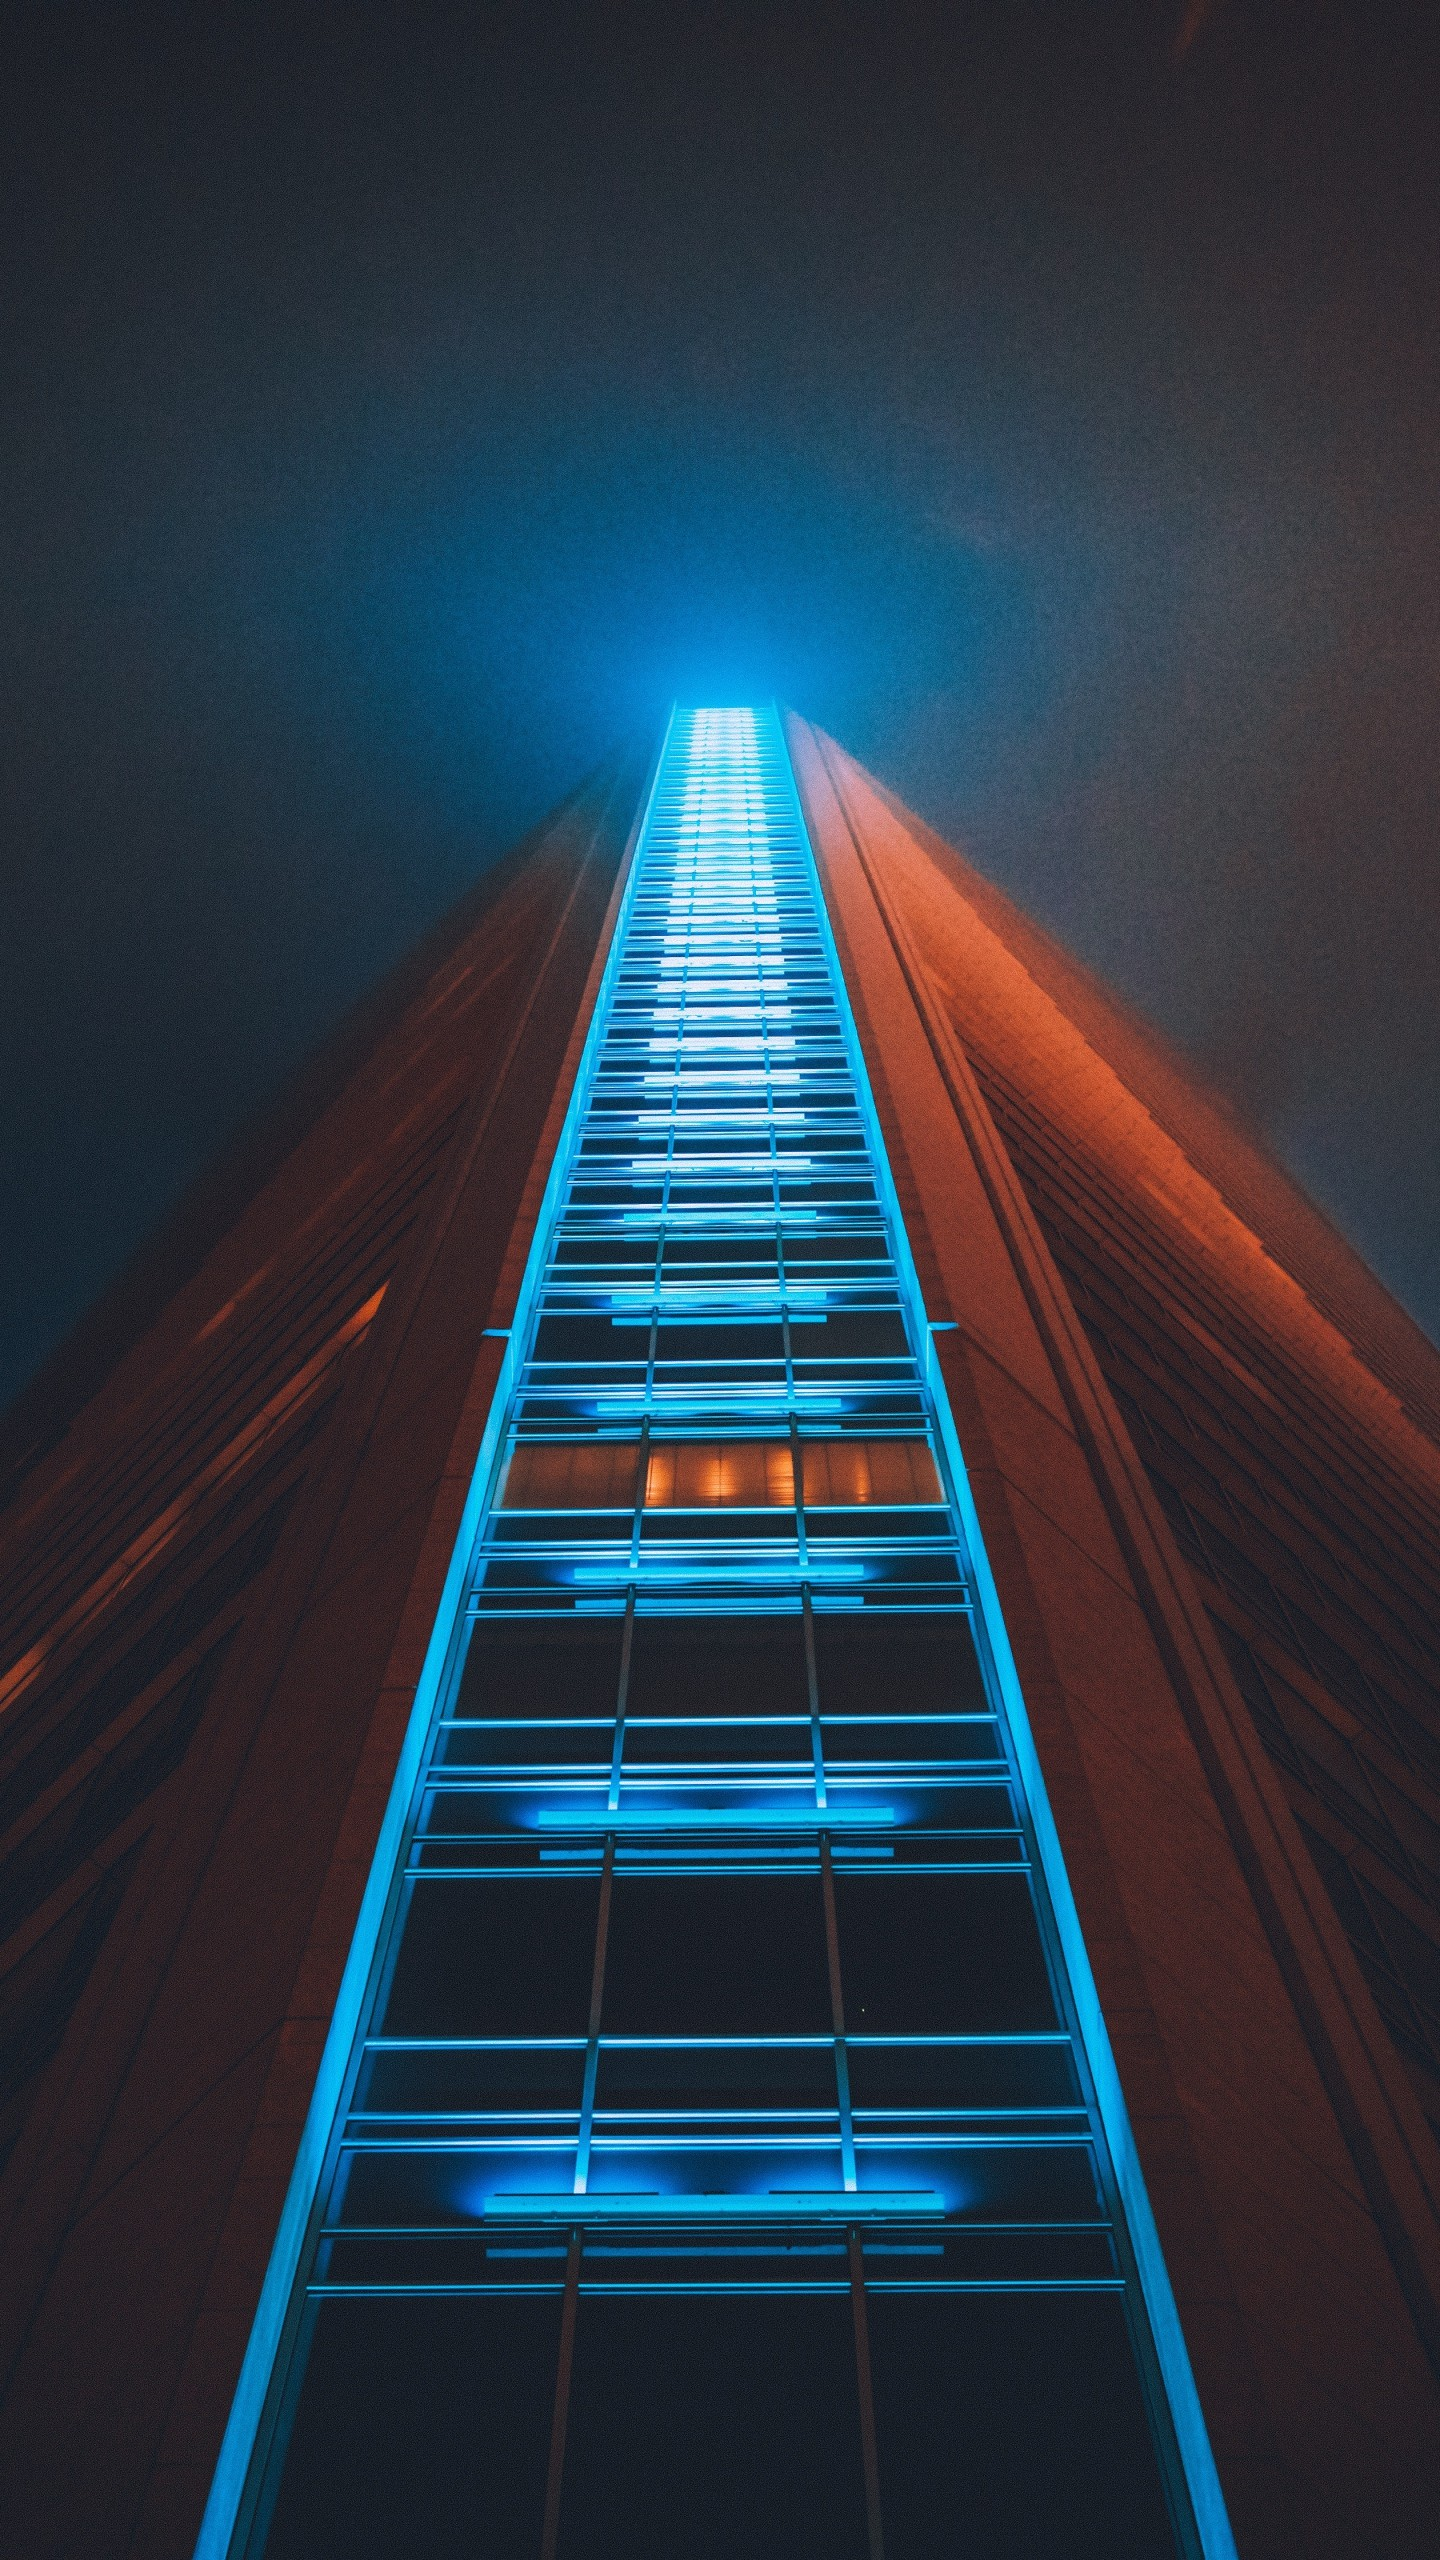 Building Skyscraper Structure Night Wallpaper 1440x2560 380x676